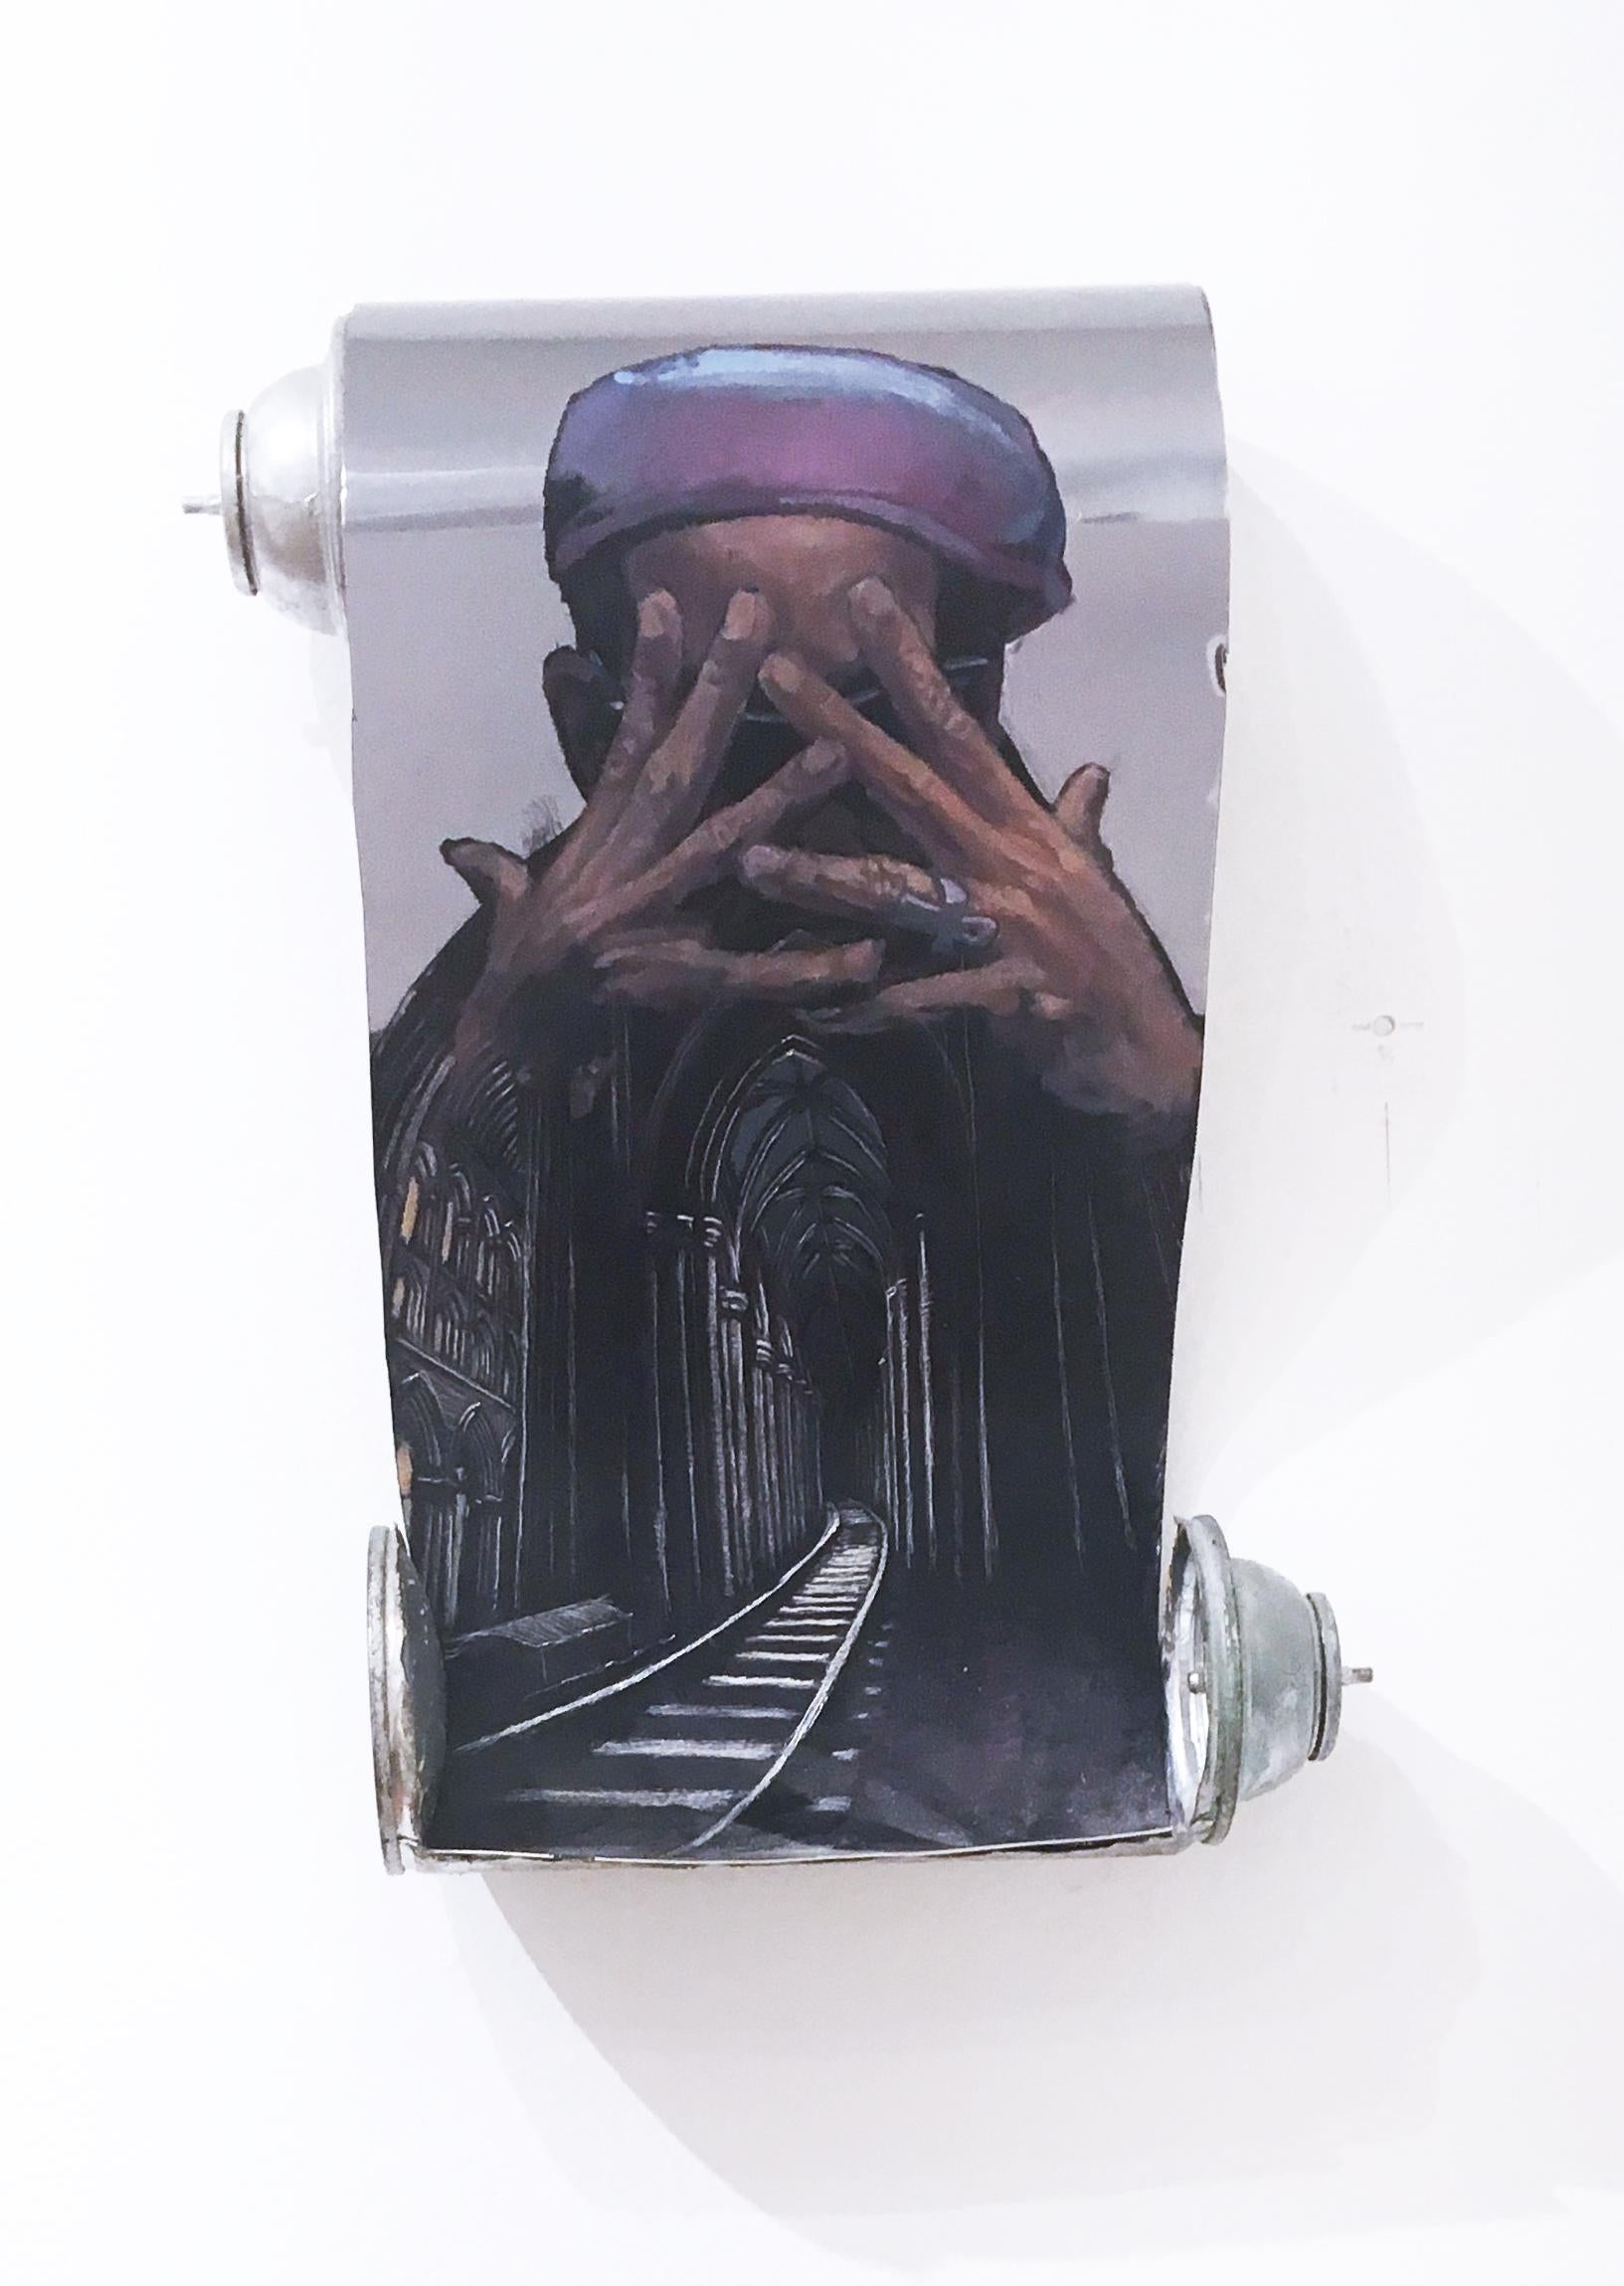 Phase 2 by street artist DISTORT, spray can scroll etching with enamel portrait